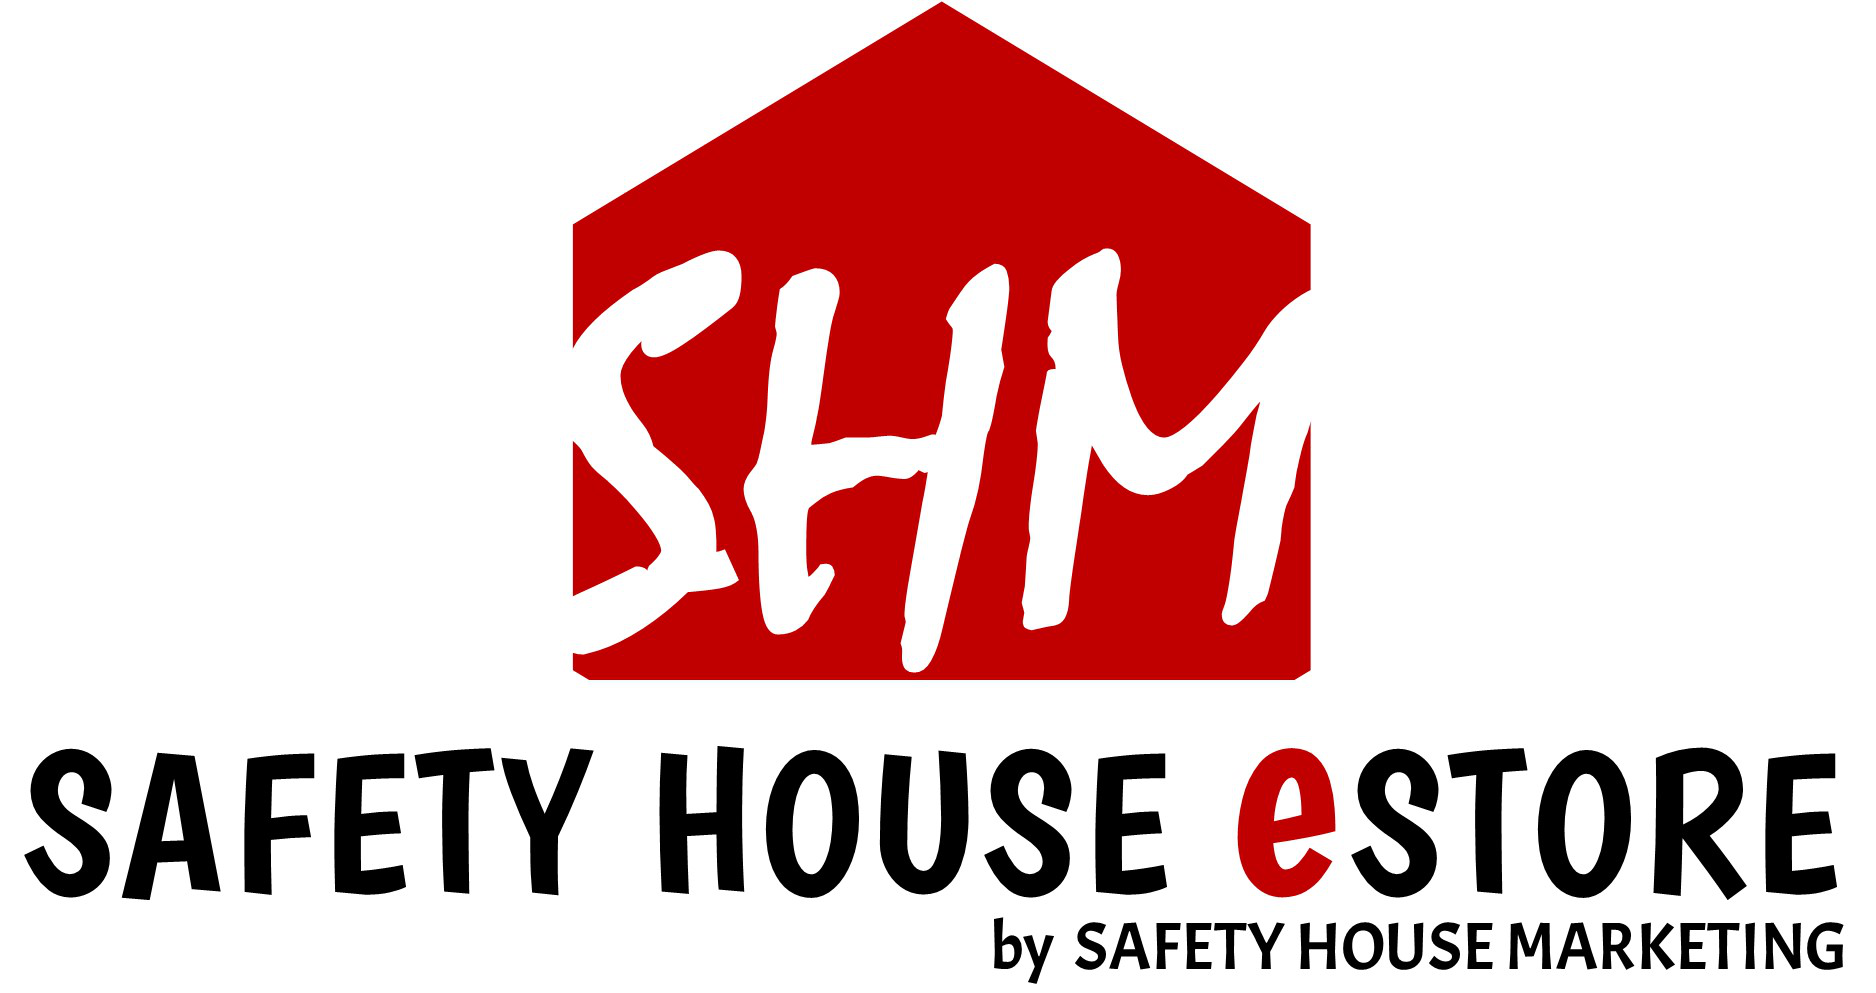 Safety House eStore by Safety House Marketing